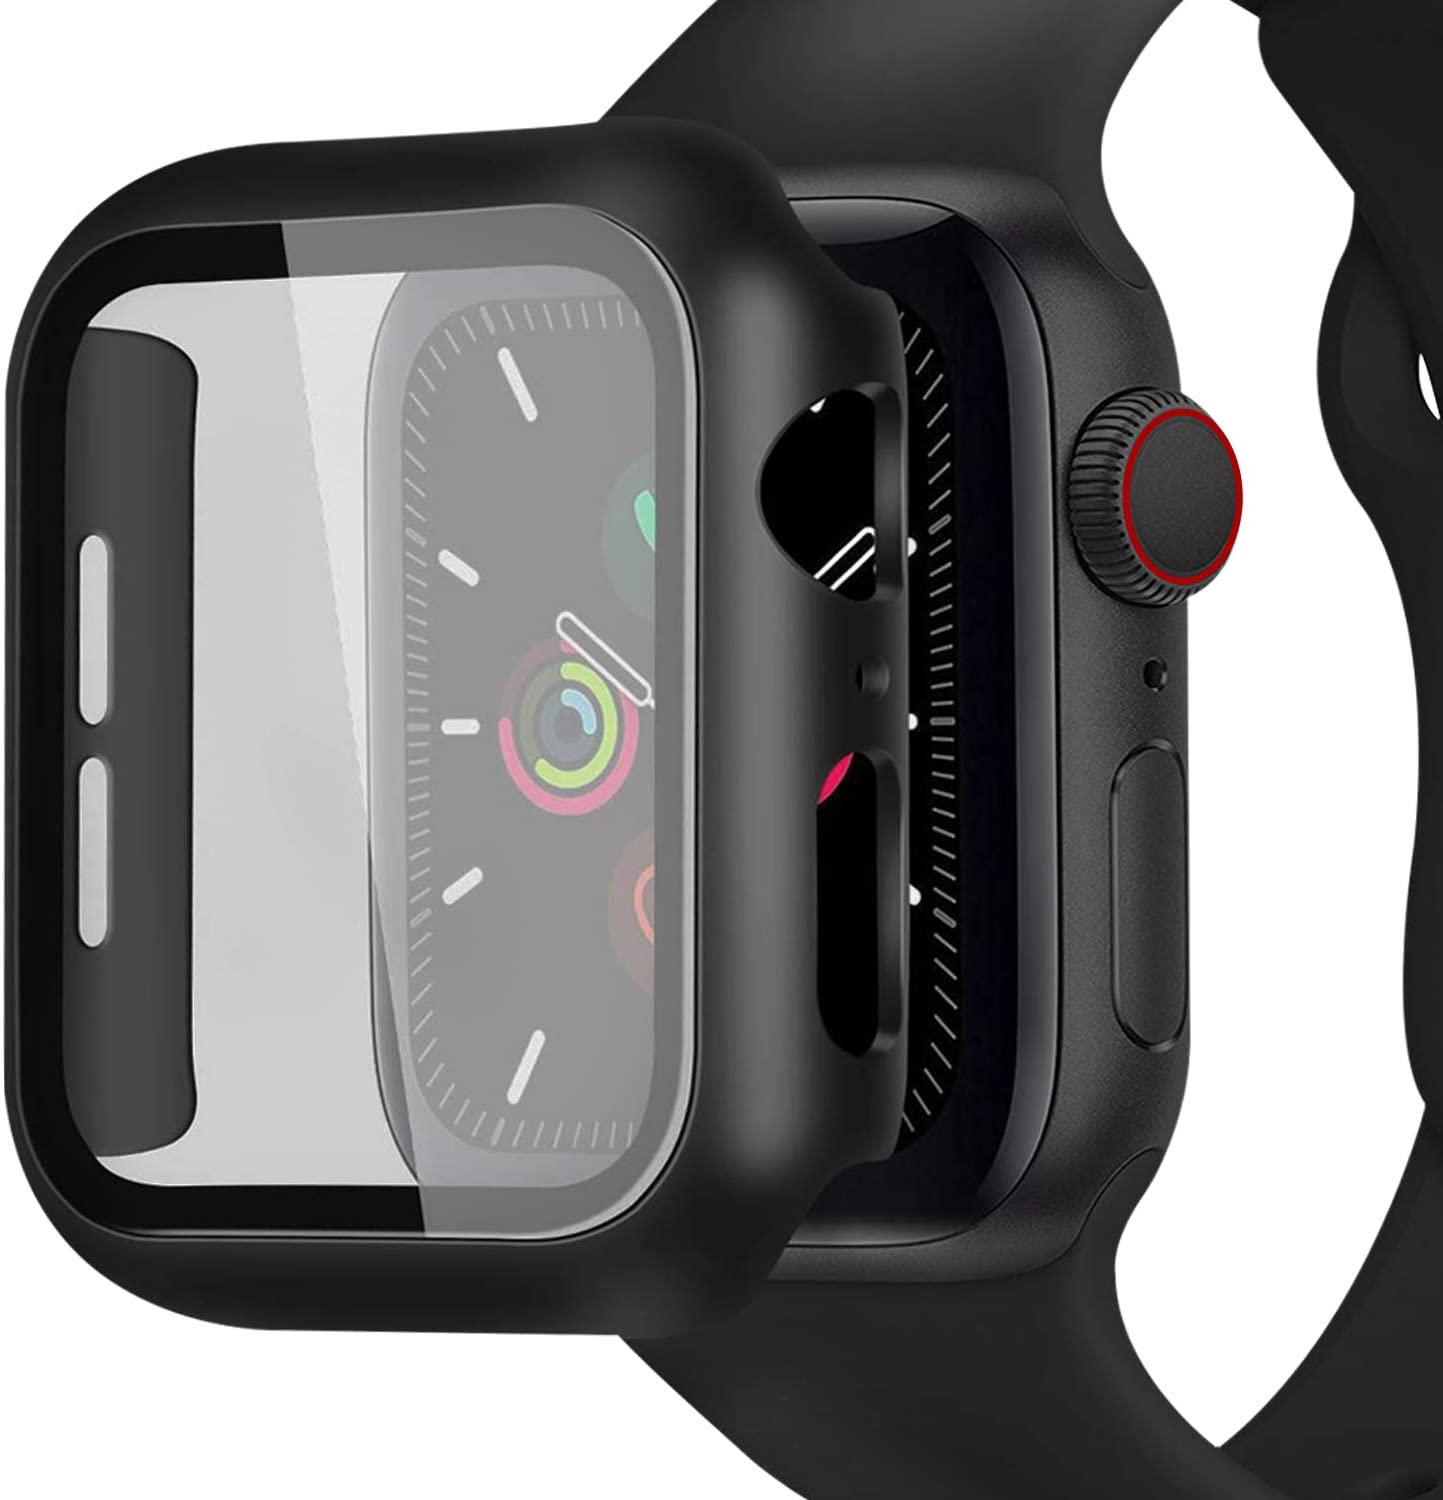 [2 Pack] Case for Apple Watch 40mm Series 6/5/4/SE Built in Tempered Glass Screen Protector, Miesherk STOCK Hard PC Bumper Full Coverage Shockproof Cover HD Clear Protective Film for iWatch 40mm-Black